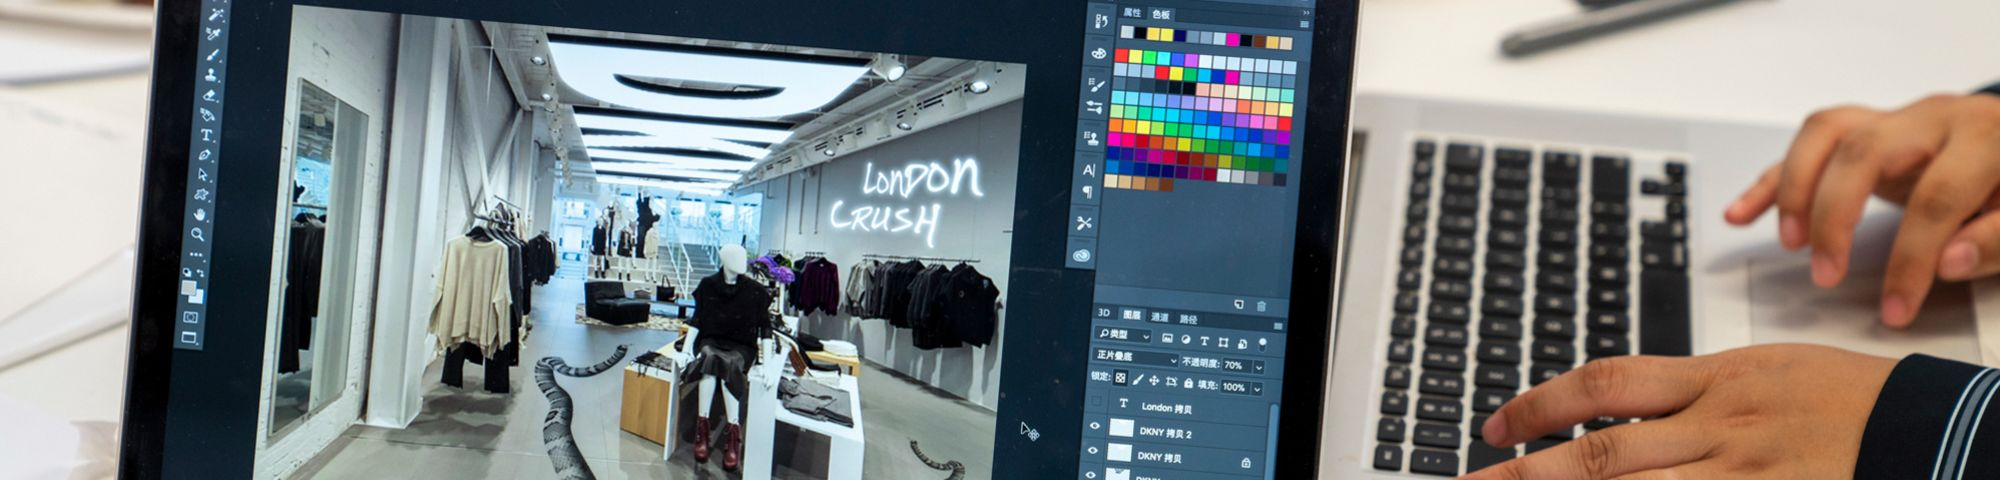 Visual Merchandising Short Course - Student Work on Laptop